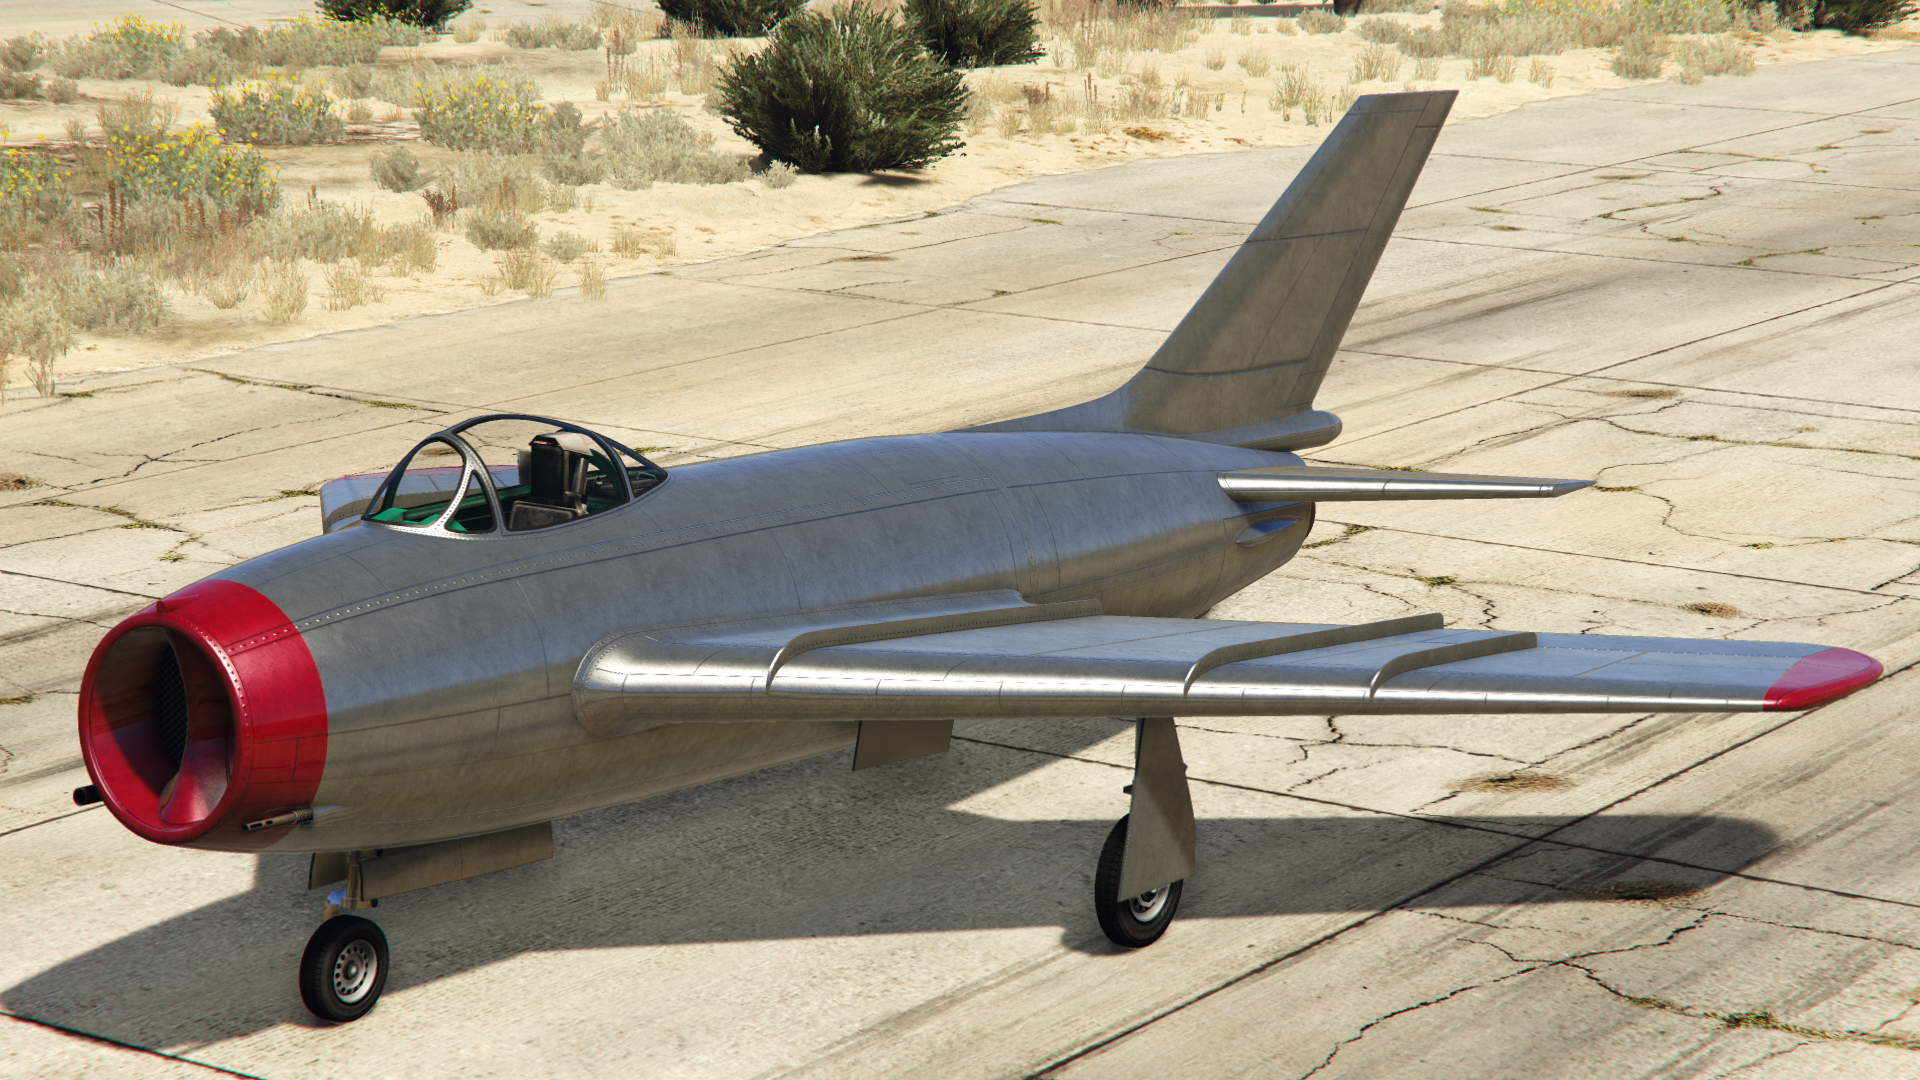 V-65 Molotok | GTA Wiki | FANDOM powered by Wikia